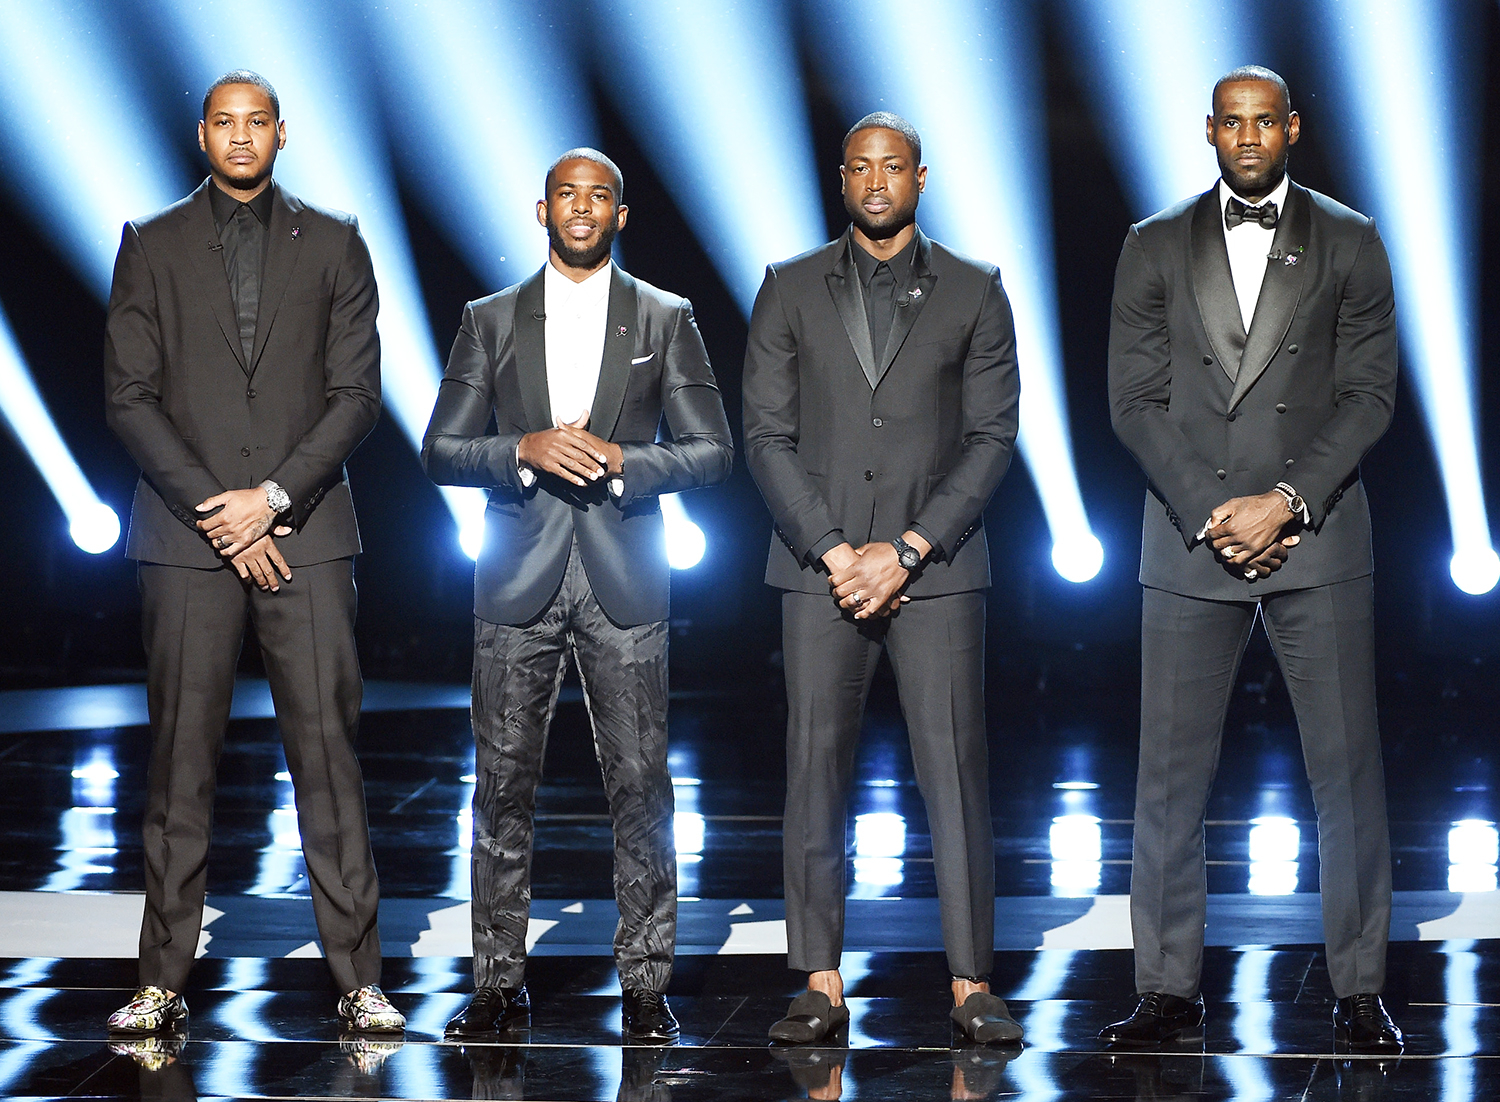 Carmelo Anthony, Chris Paul, Dwyane Wade and LeBron James